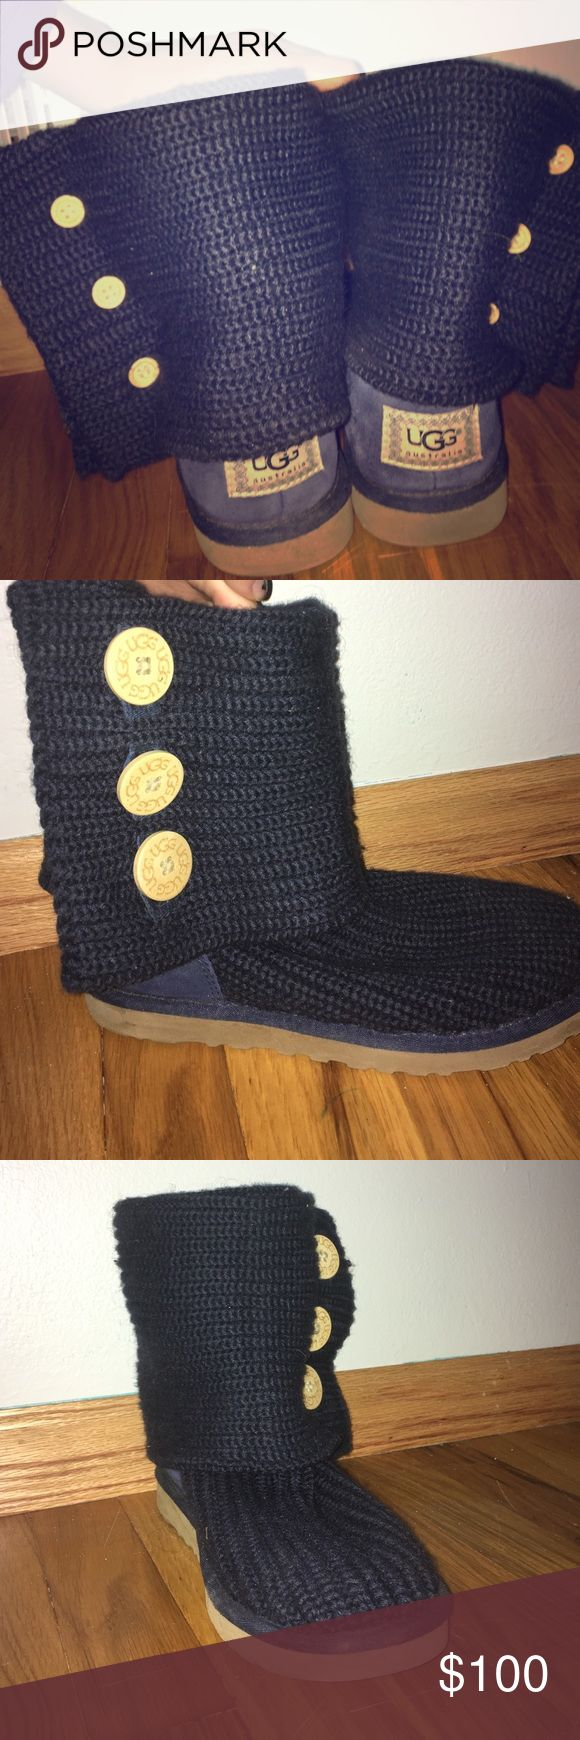 """Navy blue knit UGG boots """"Women's Classic Cardy"""" I purchased these boots from the Ugg Store at MOA last winter and wore them 3 times. They are super comfortable and the fur is still fuzzy. UGG Shoes Winter & Rain Boots"""